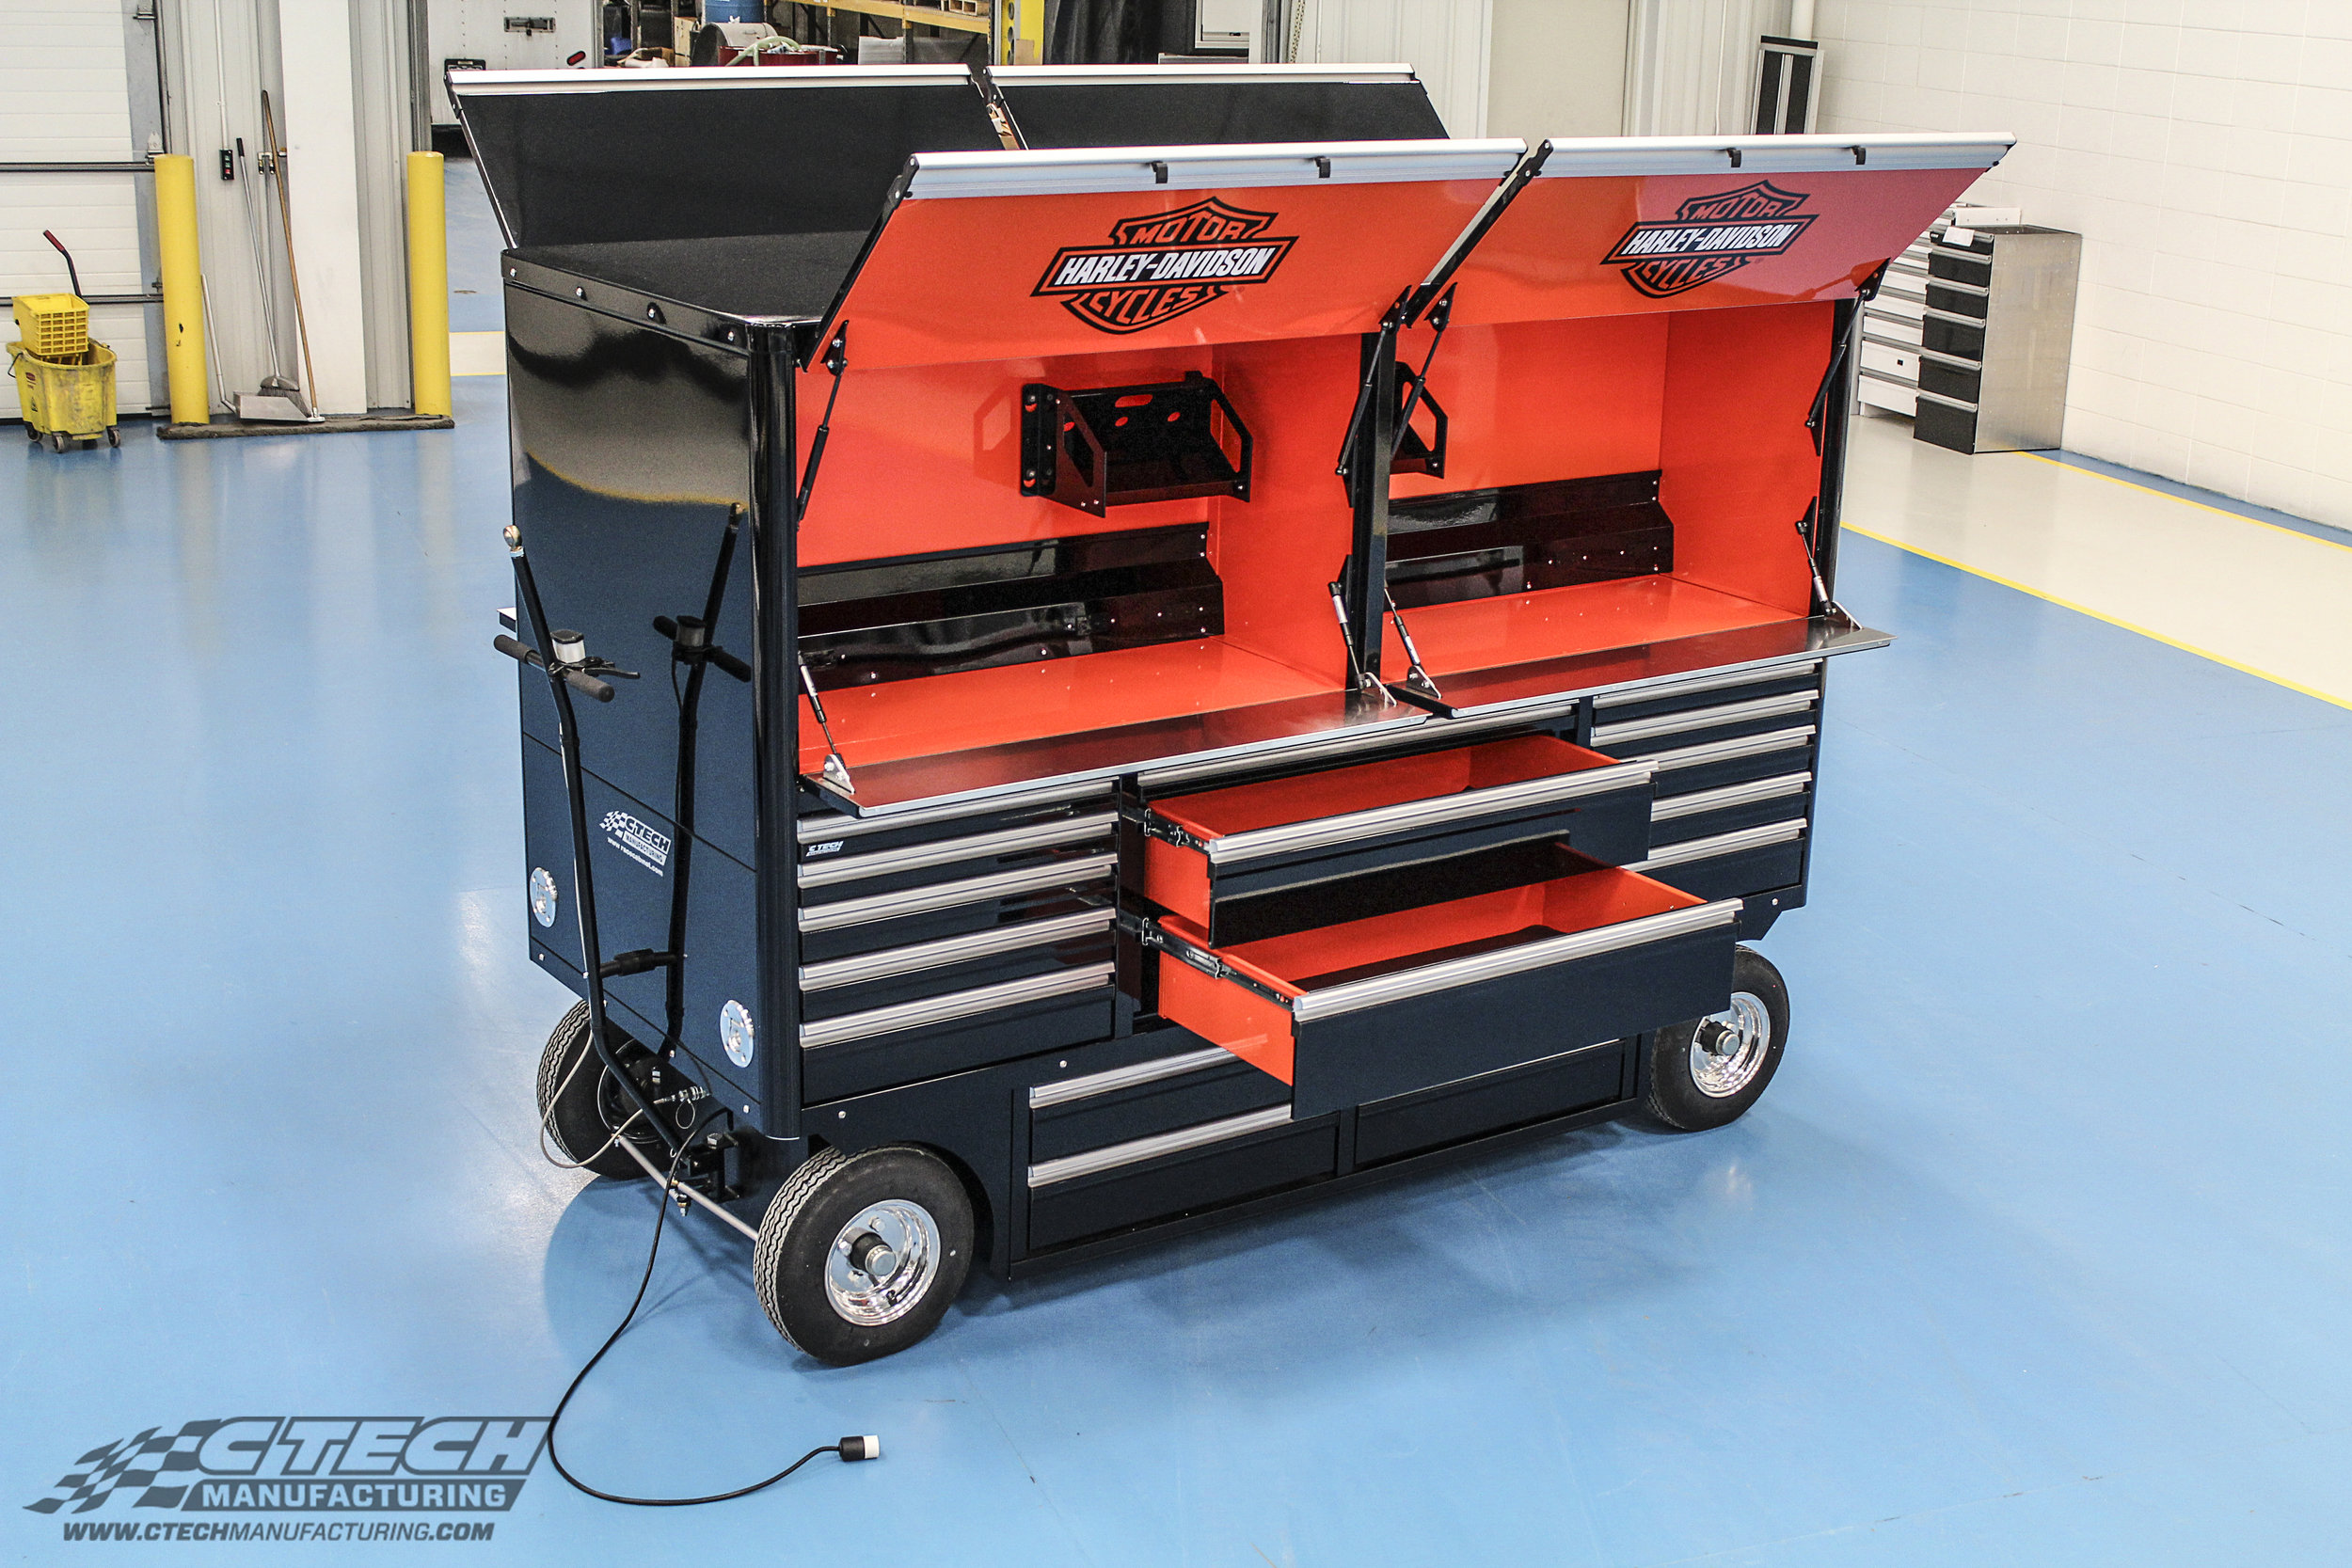 The Sportsman Cart by CTECH provides a spacious, flip-down style worktop, complete with optional power distribution and LED lighting. This large cart provides an incredbile amount of dual-sided storage on a mobile platform.